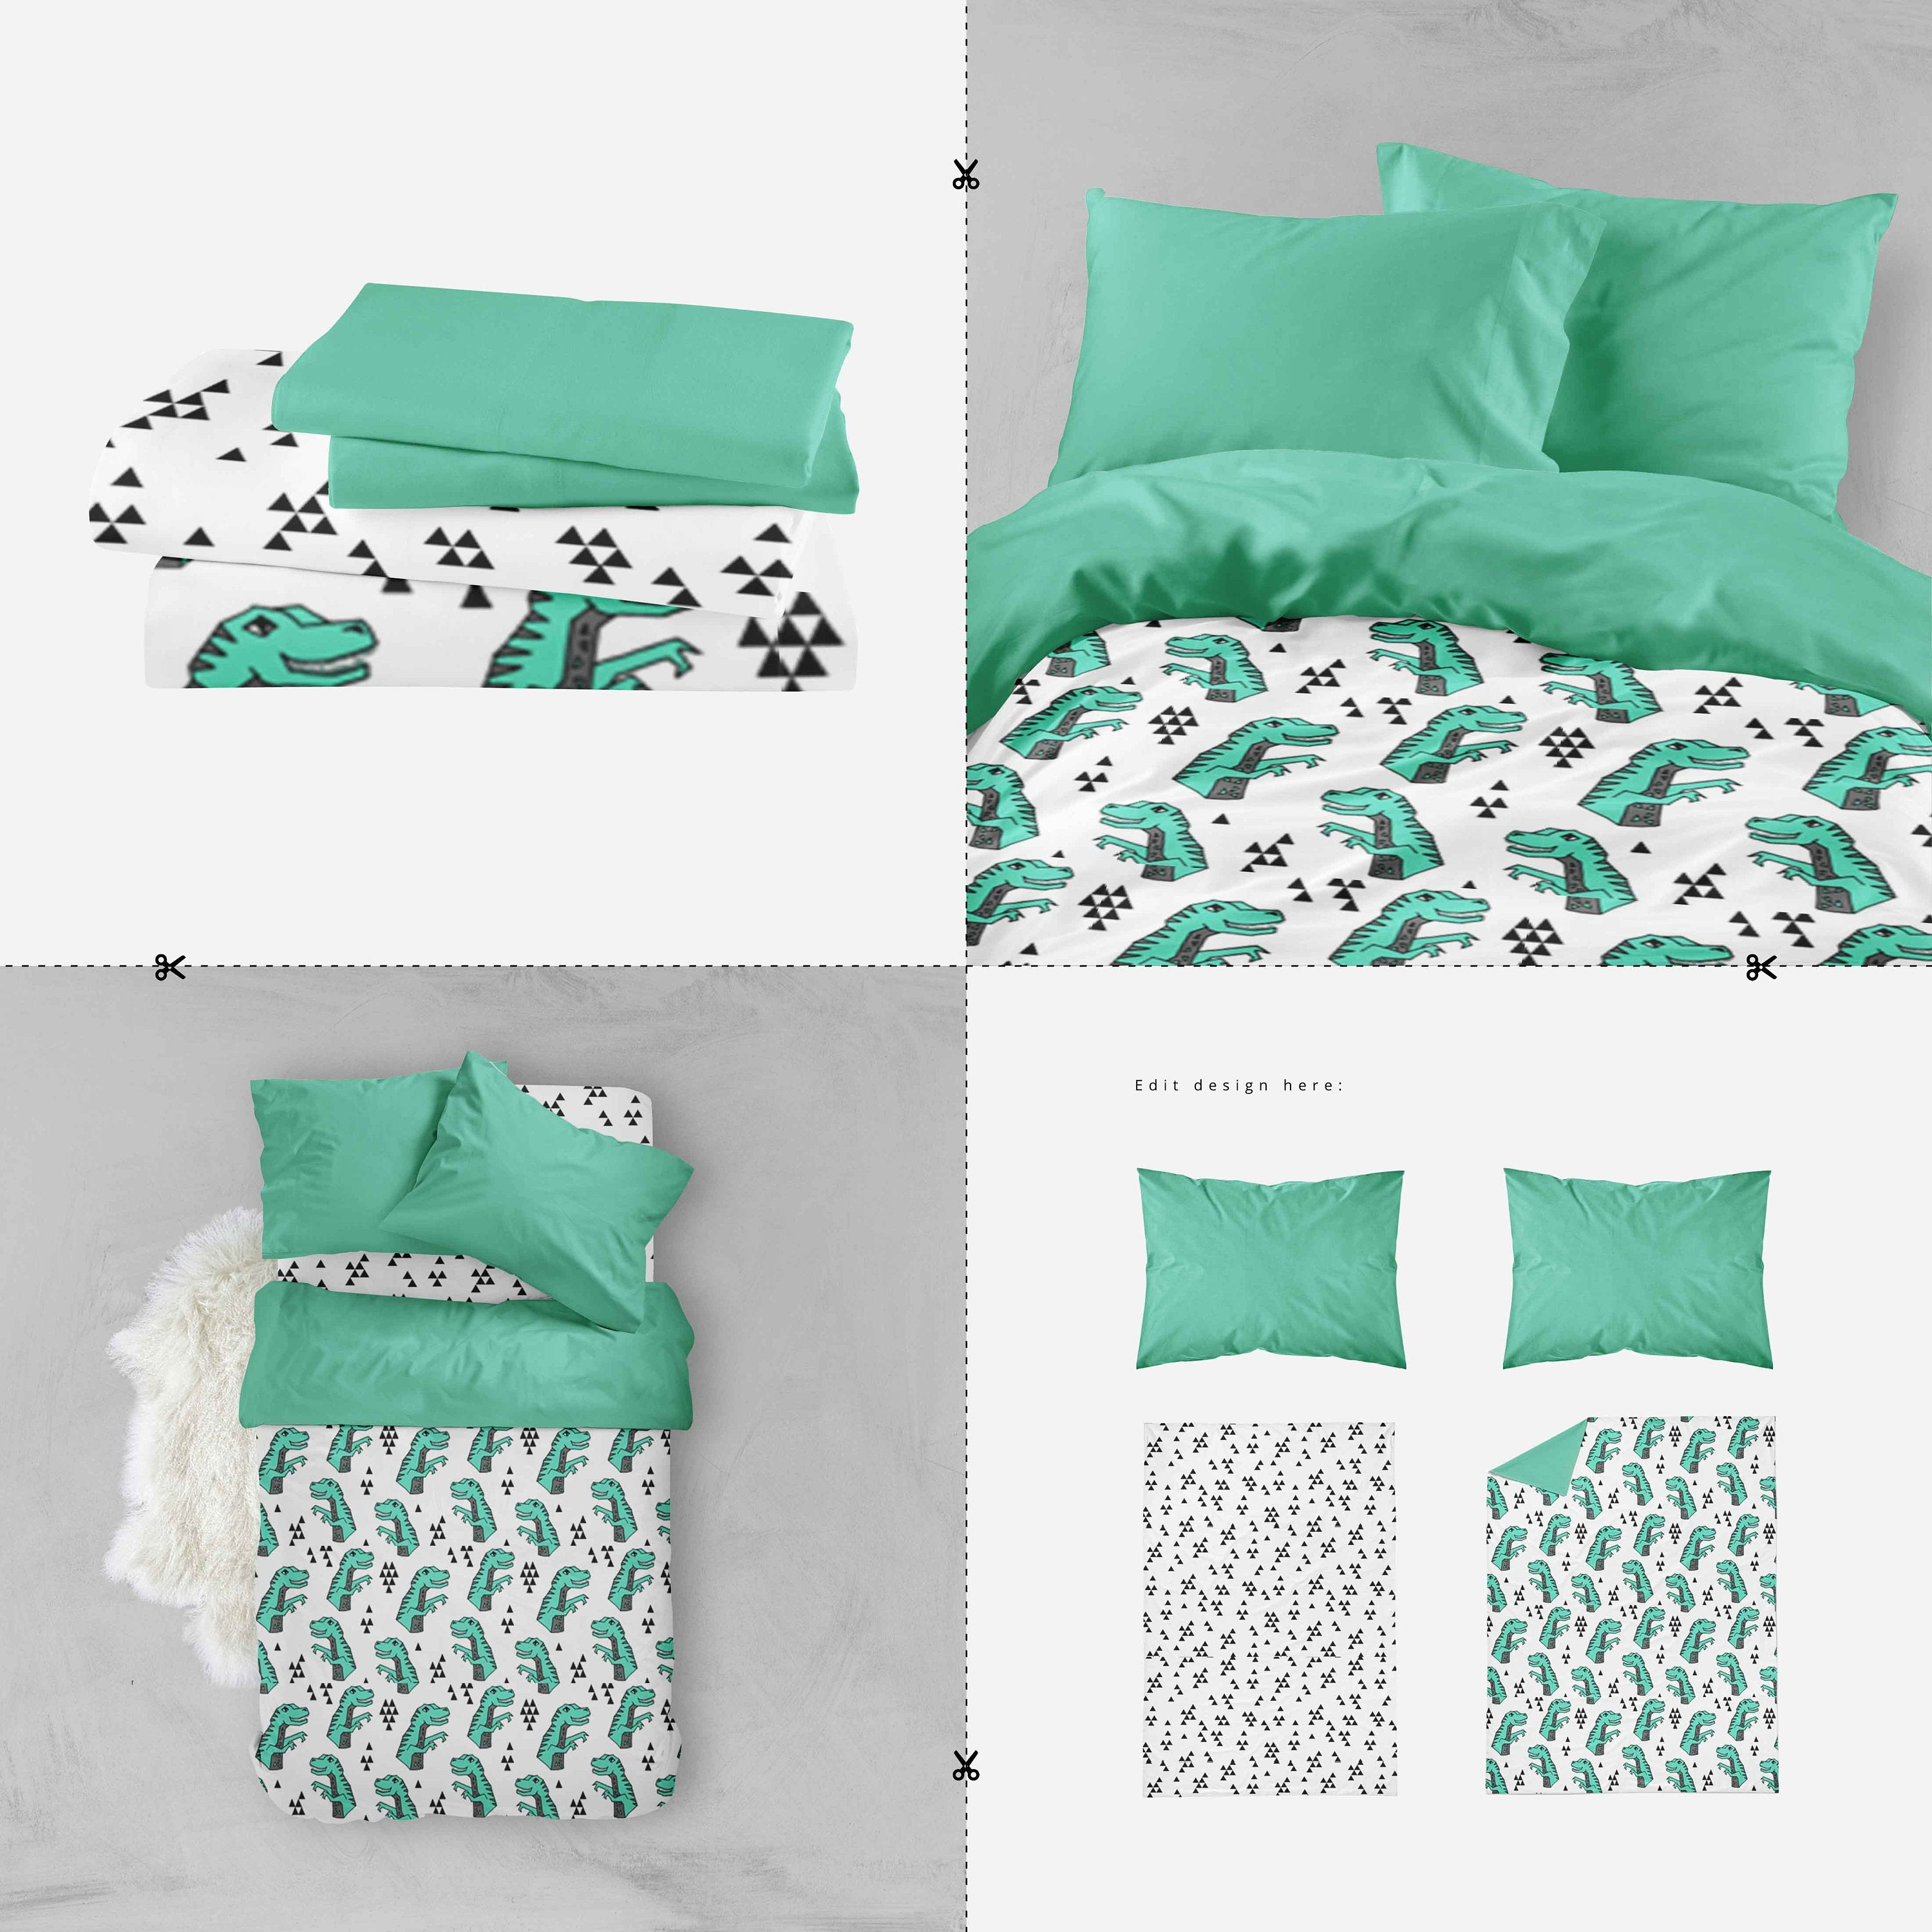 Boy Toddler Bedding Sets - Green Dinosaur T Rex - Dream Evergreen @DreamEvergreen